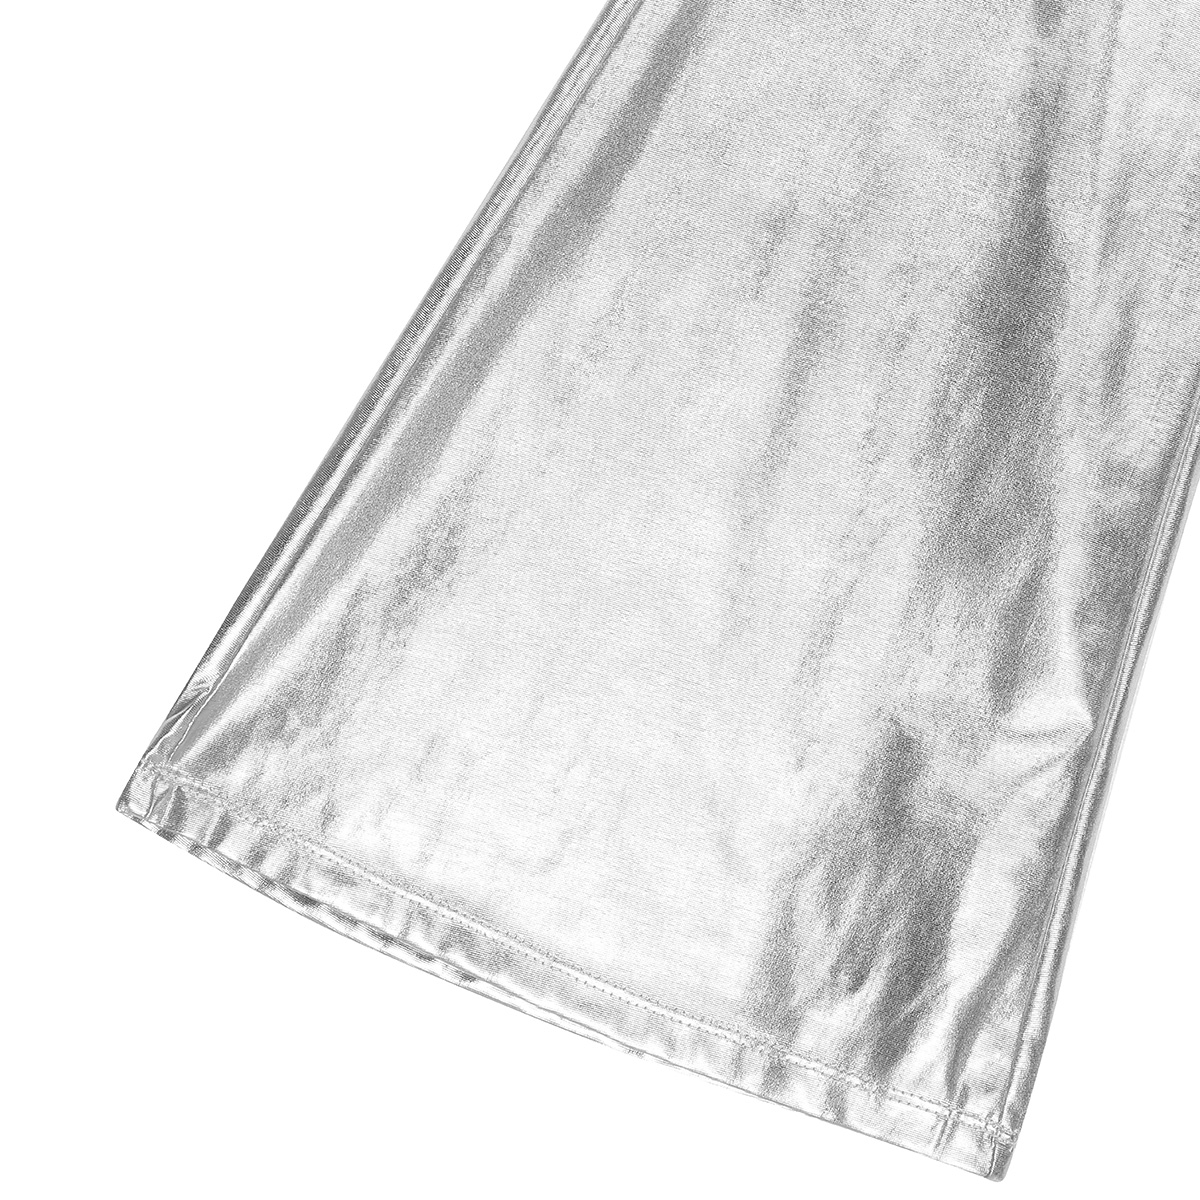 ChicTry Adults Mens Shiny Metallic Disco Pants with Bell Bottom Flared Long Pants Dude Costume Trousers for 70's Theme Parties 52